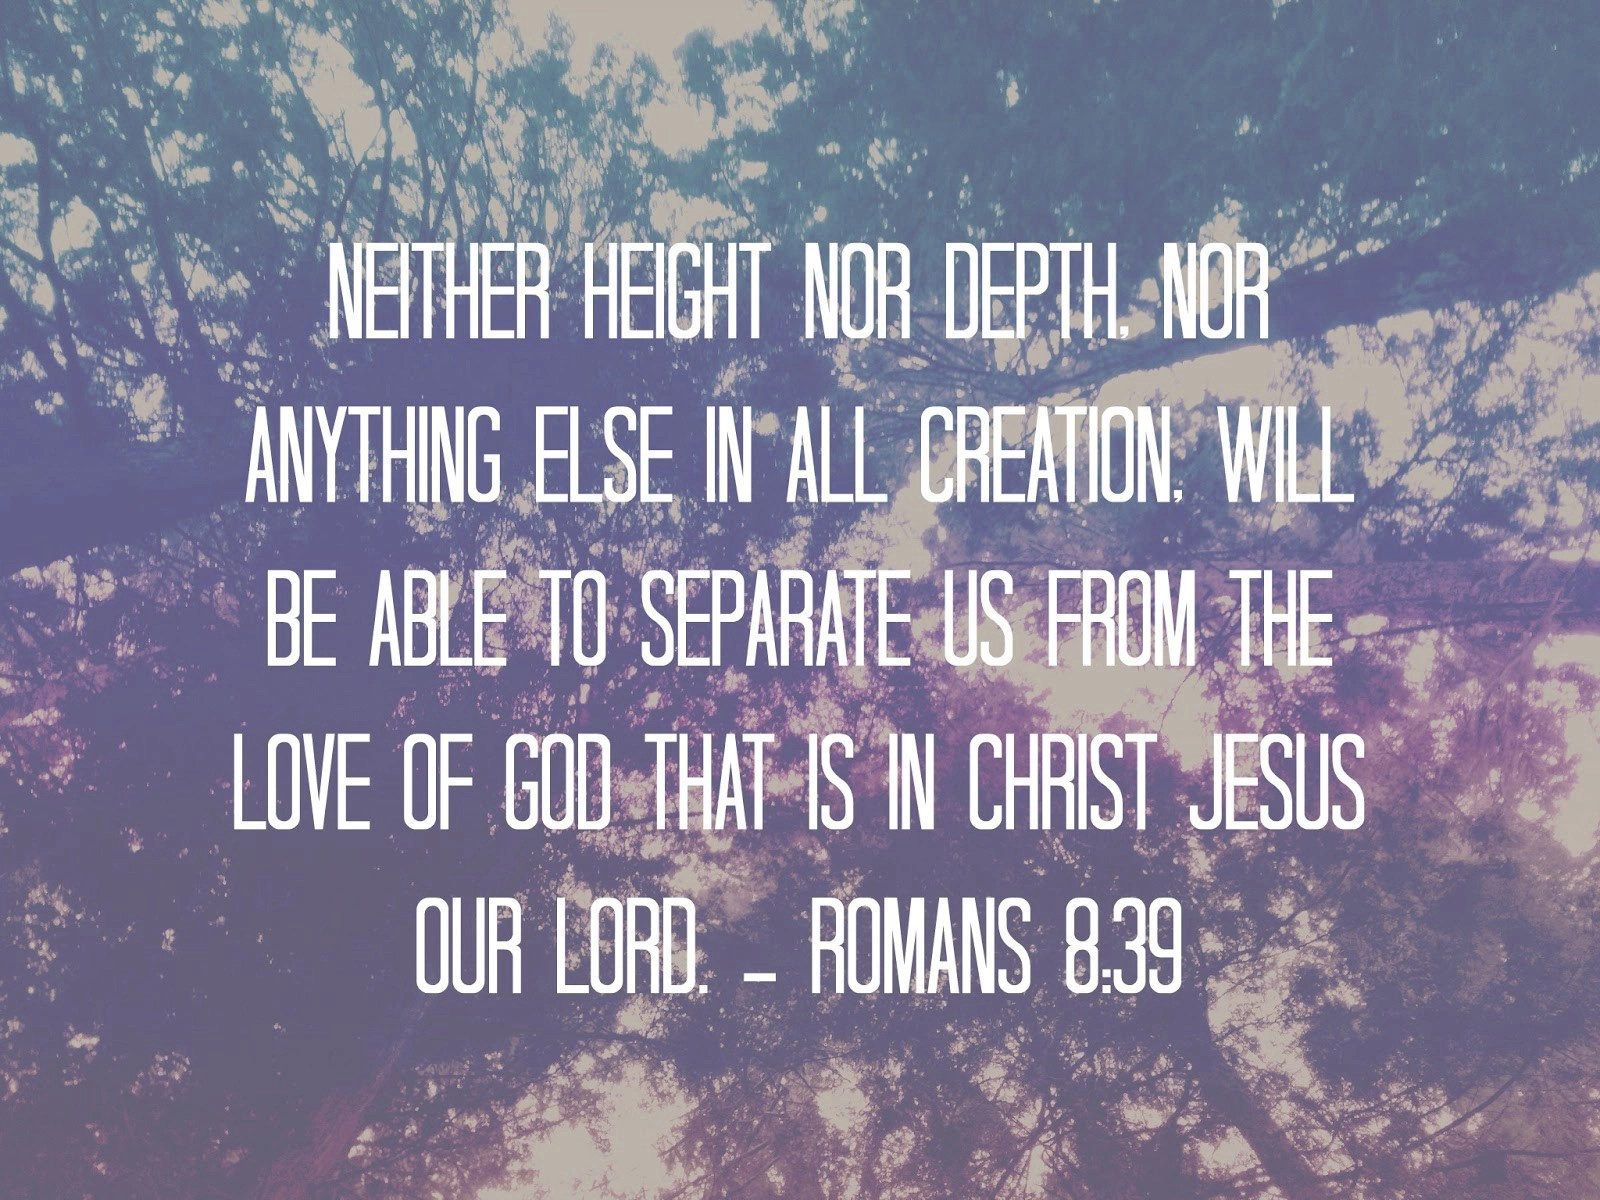 Tremendous Collection Free Bible Verse From All Over Bible Verses Quotes Our God Is Bible Verse God Is So Good Bible Verse Hundreds inspiration God Is Good Bible Verse